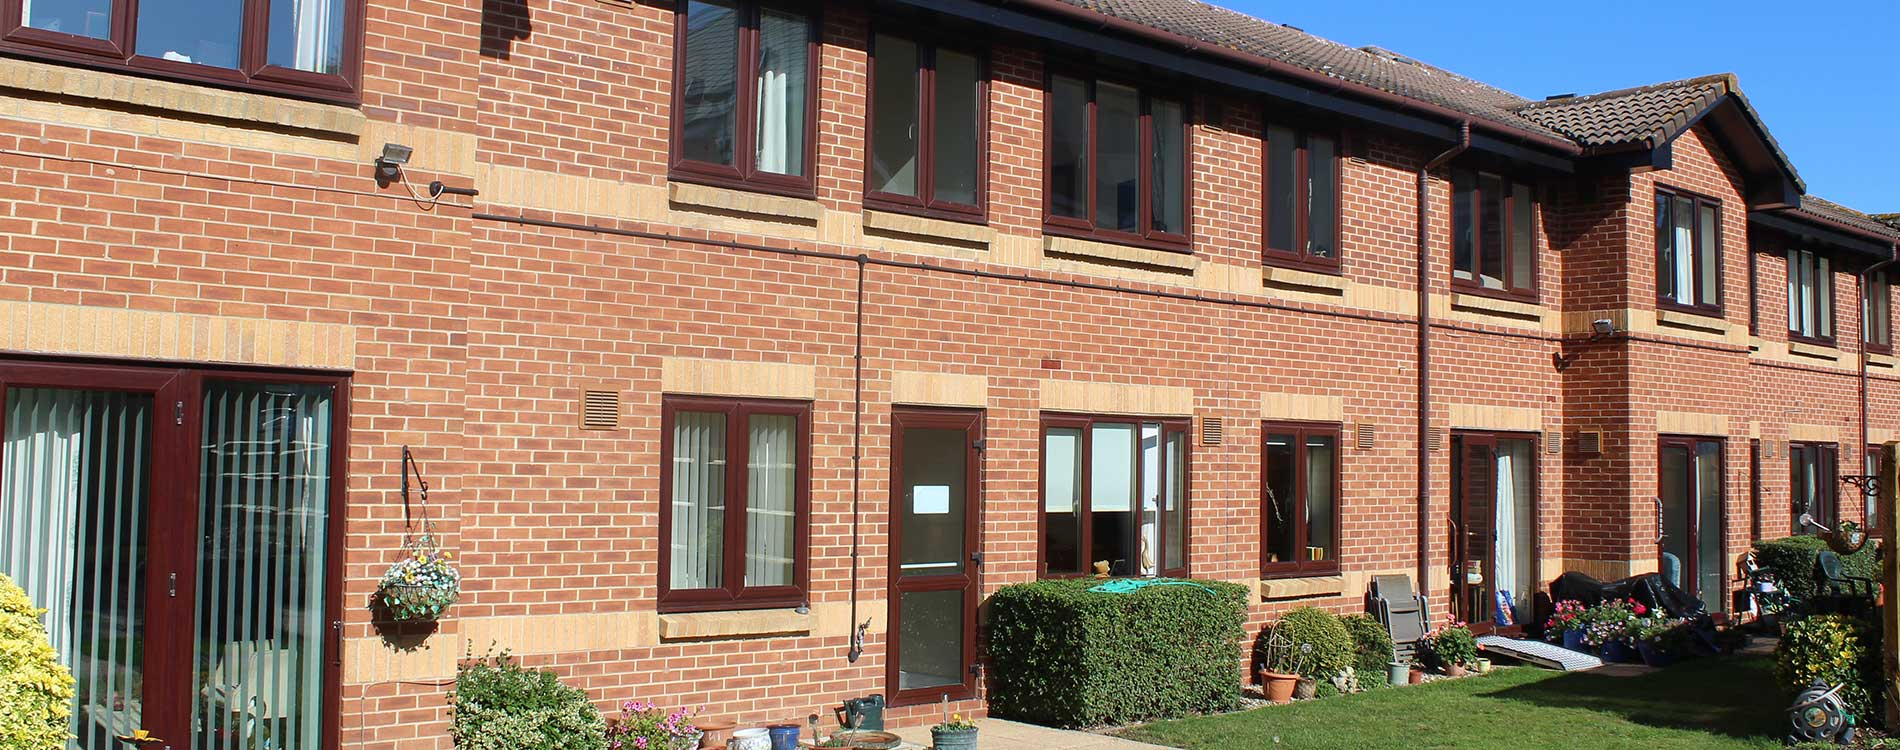 Housing block with garden space and new repairs